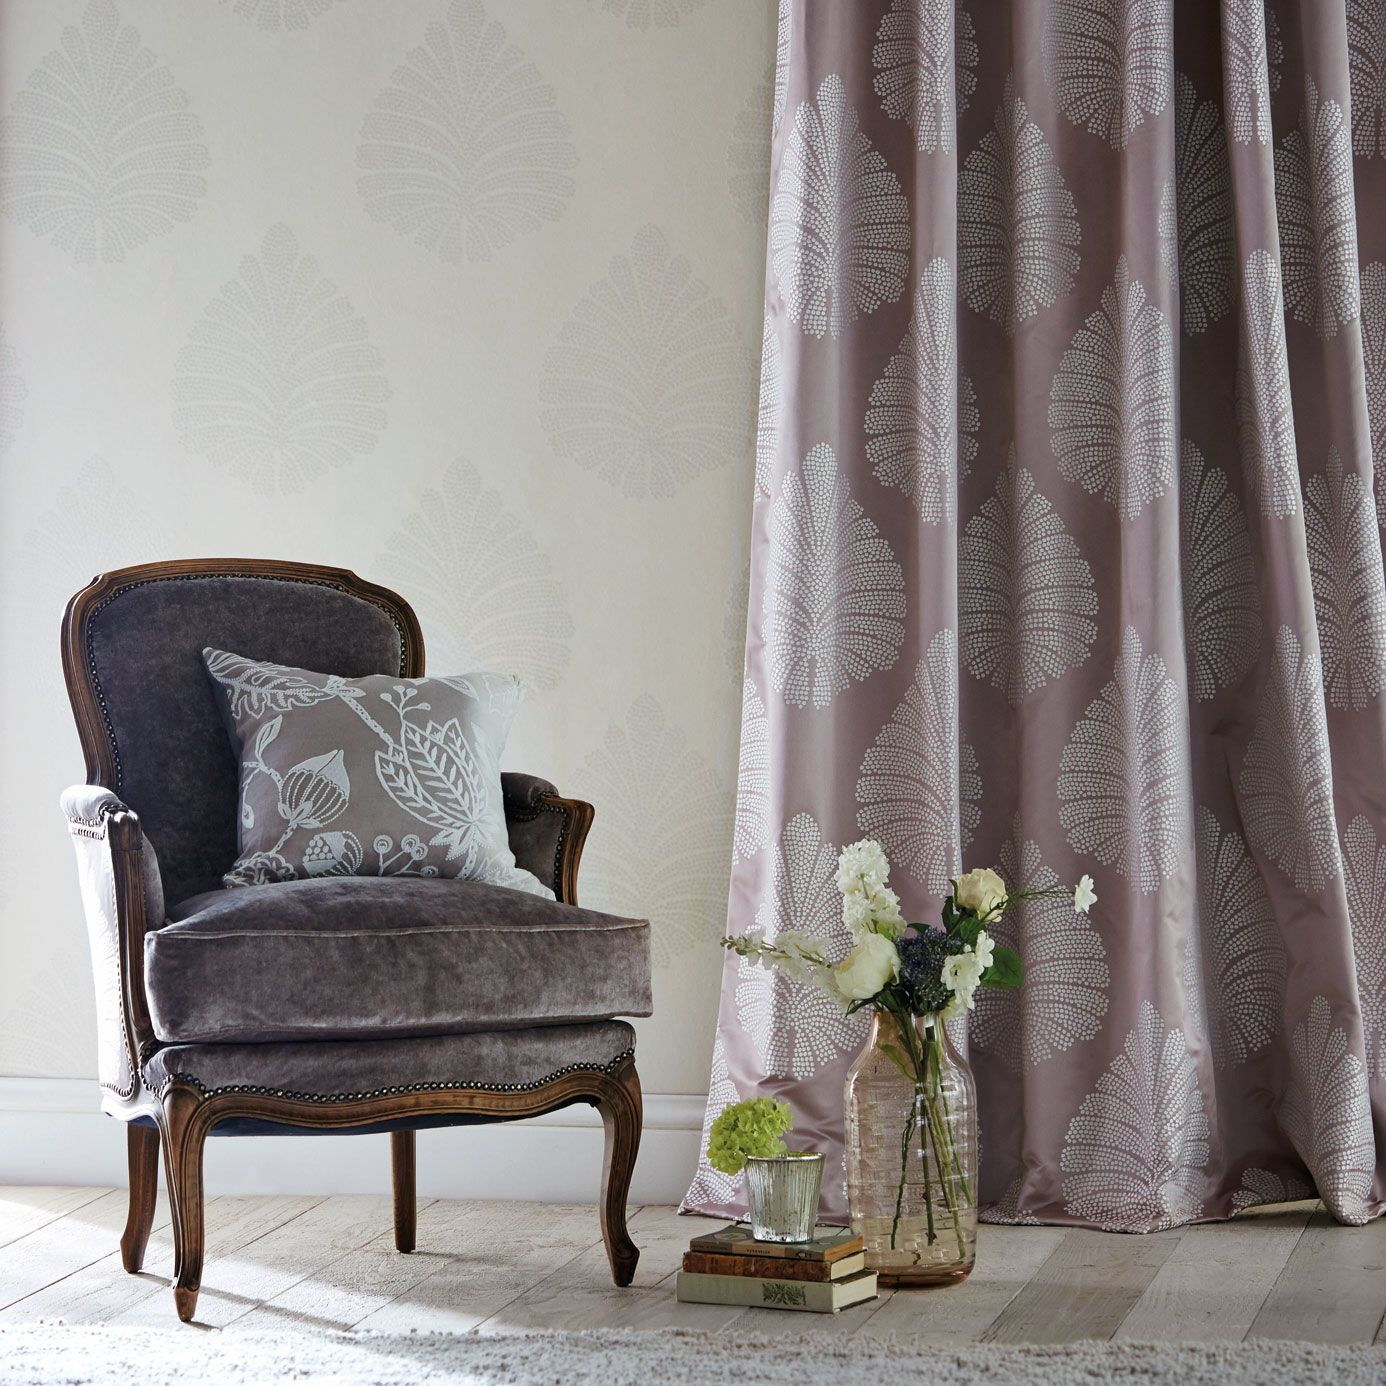 Products   Harlequin - Designer Fabrics and Wallpapers   Kamille ...